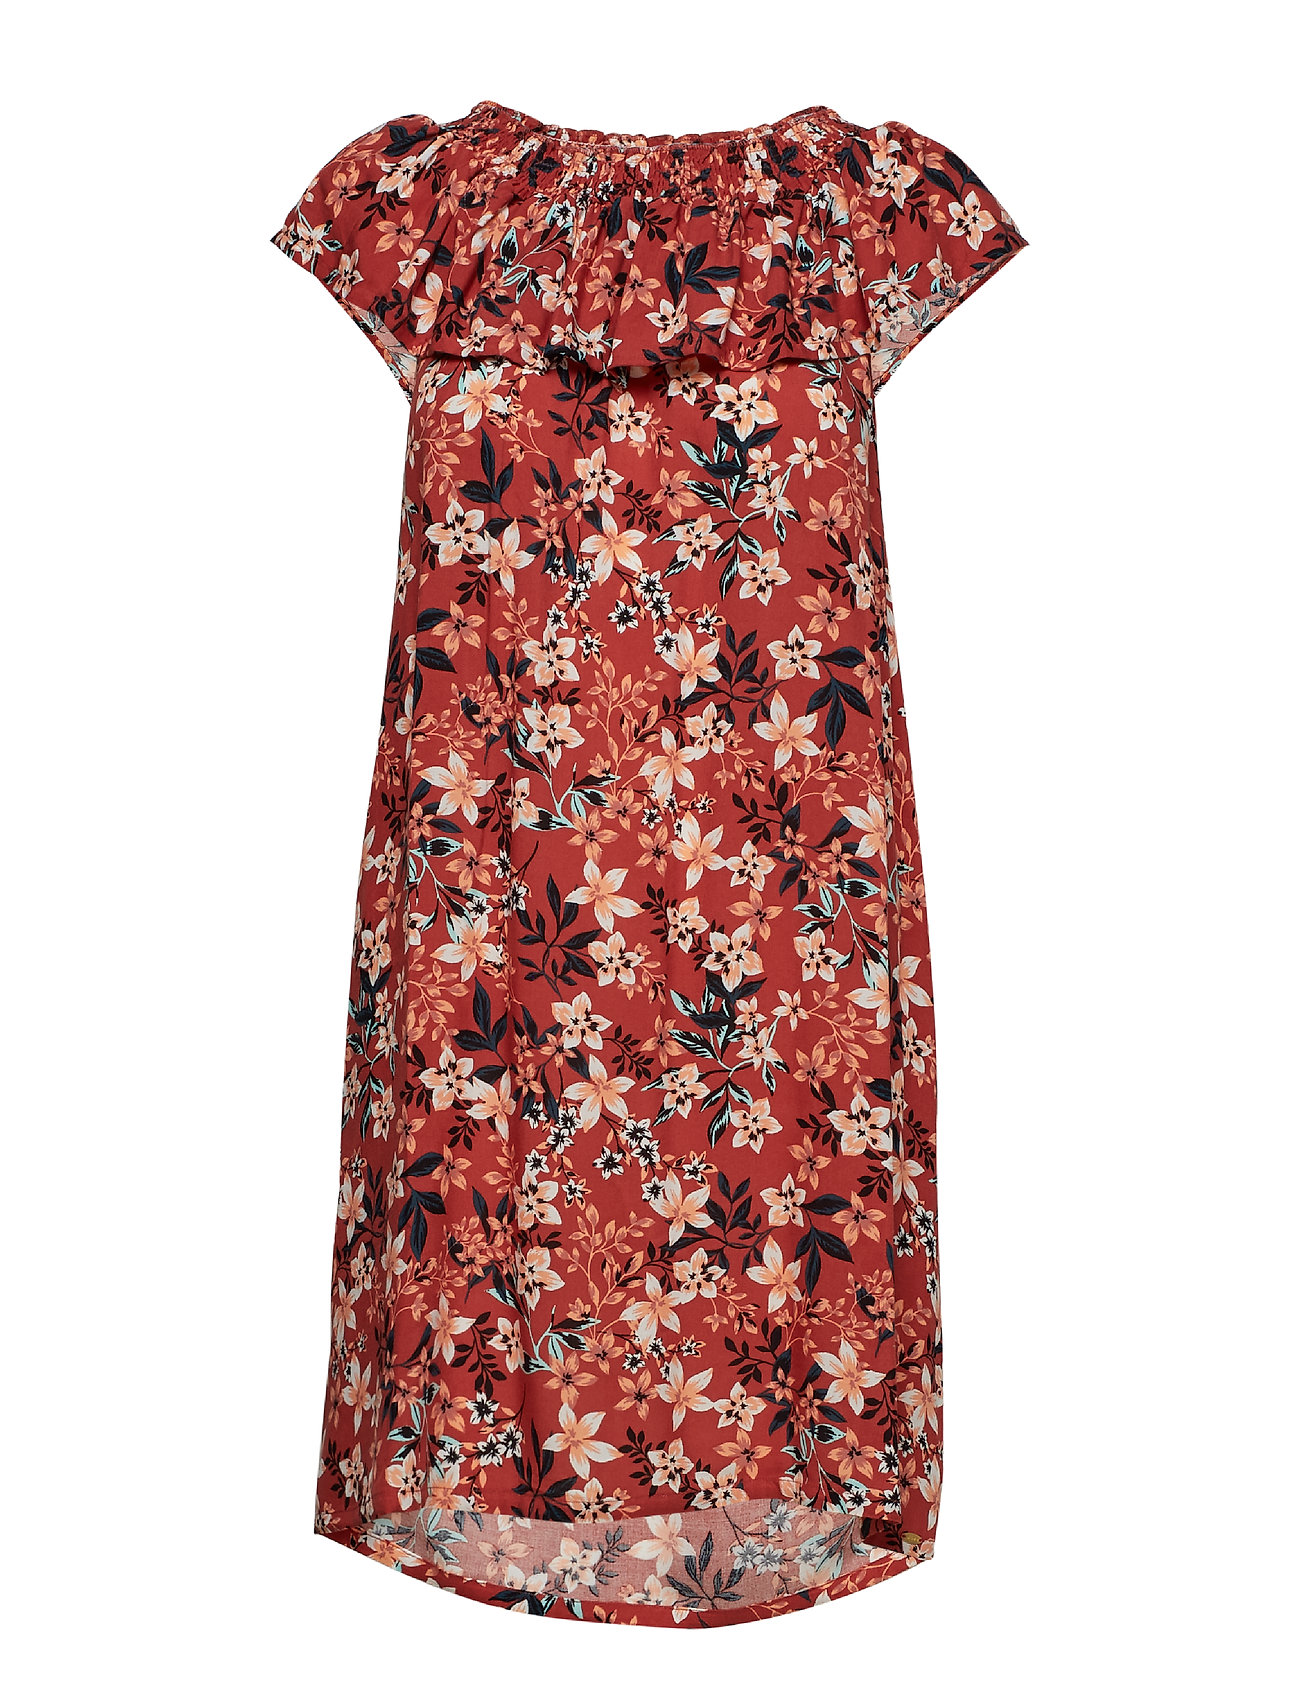 Skiny L. dress - HAWAIIAN WOODROSE